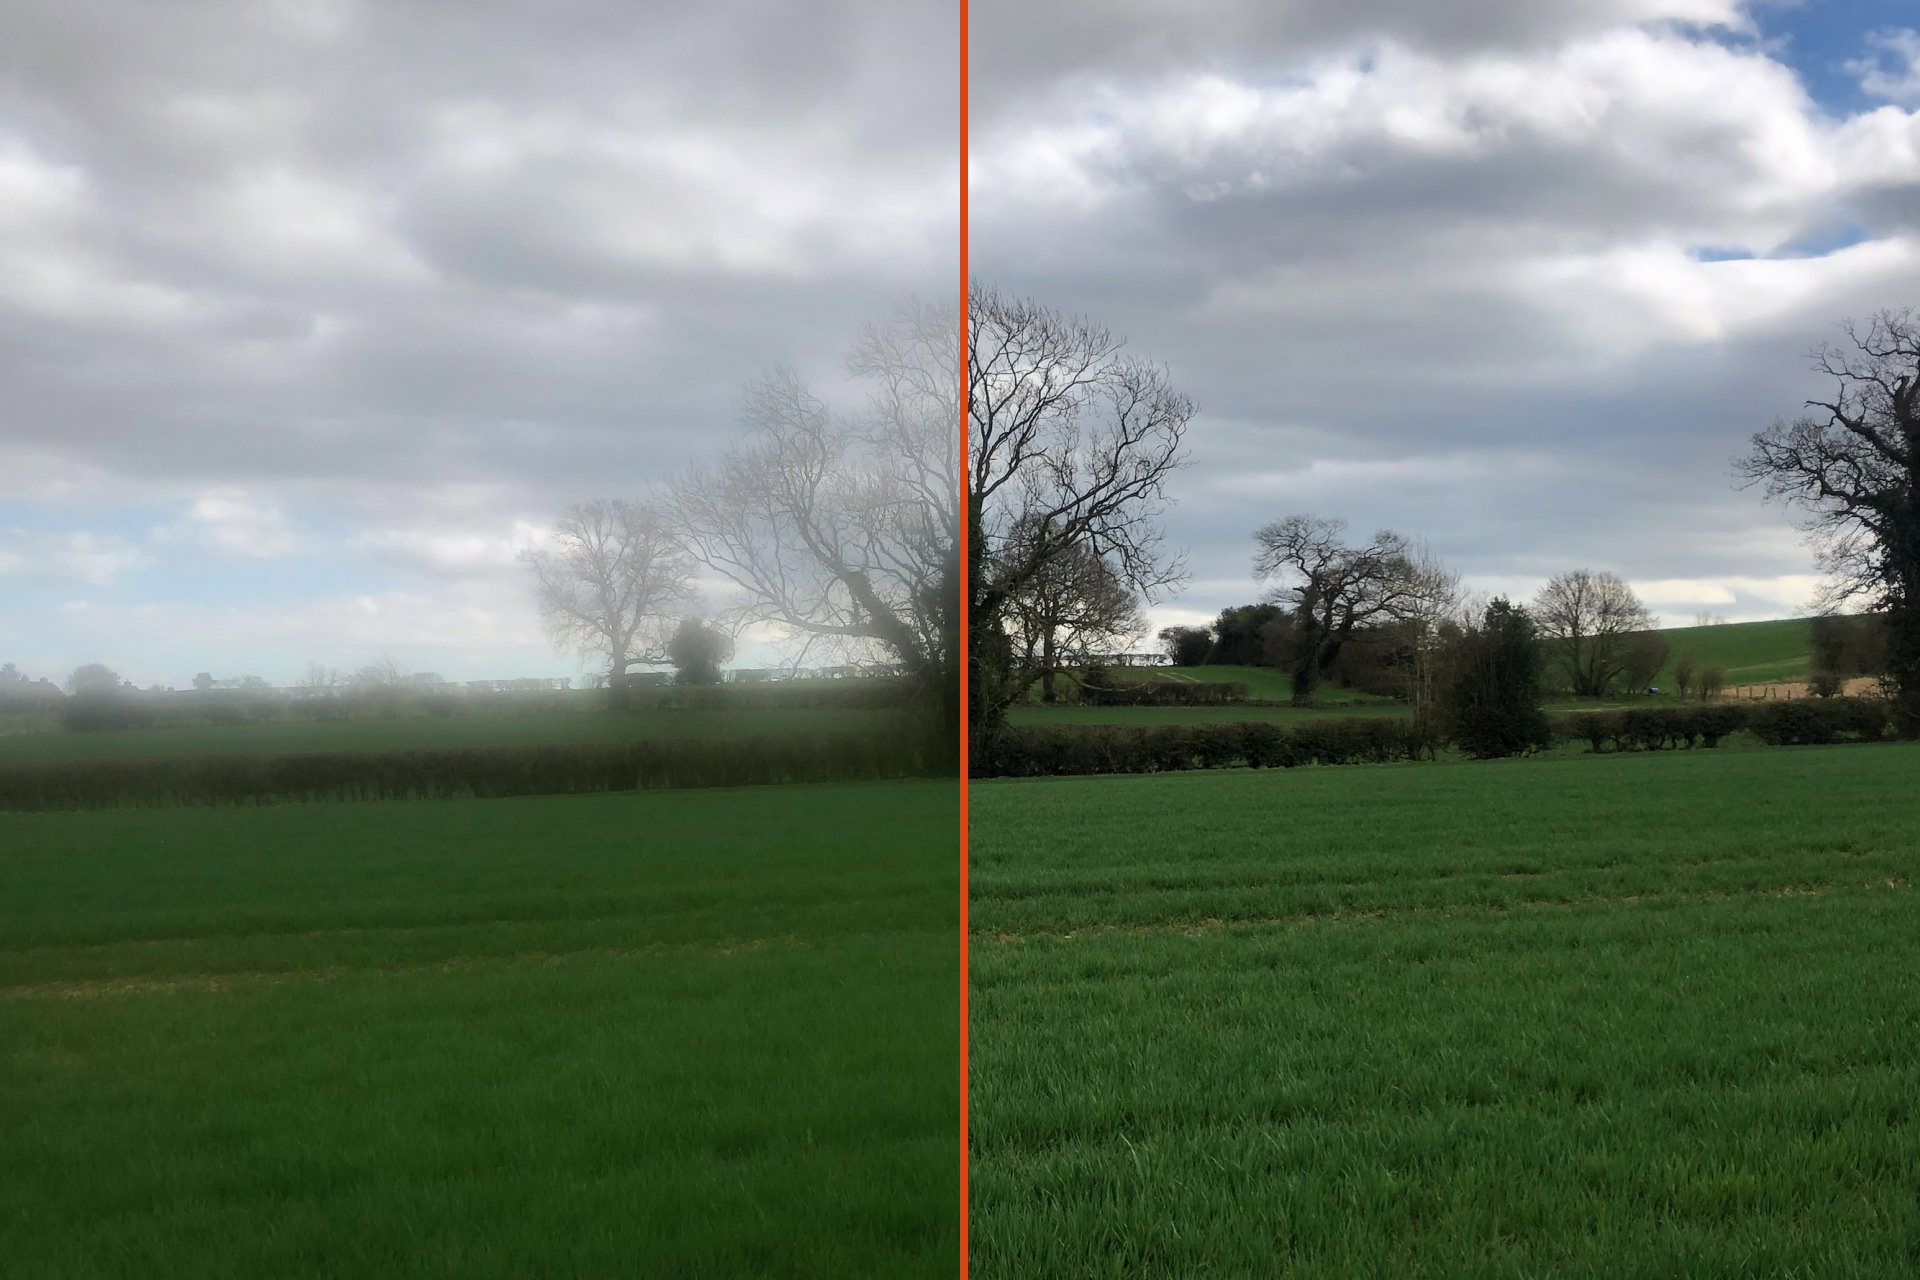 Split view showing a scene where the left is blurred due to a dirty lens and the right is sharp as the lens is clean